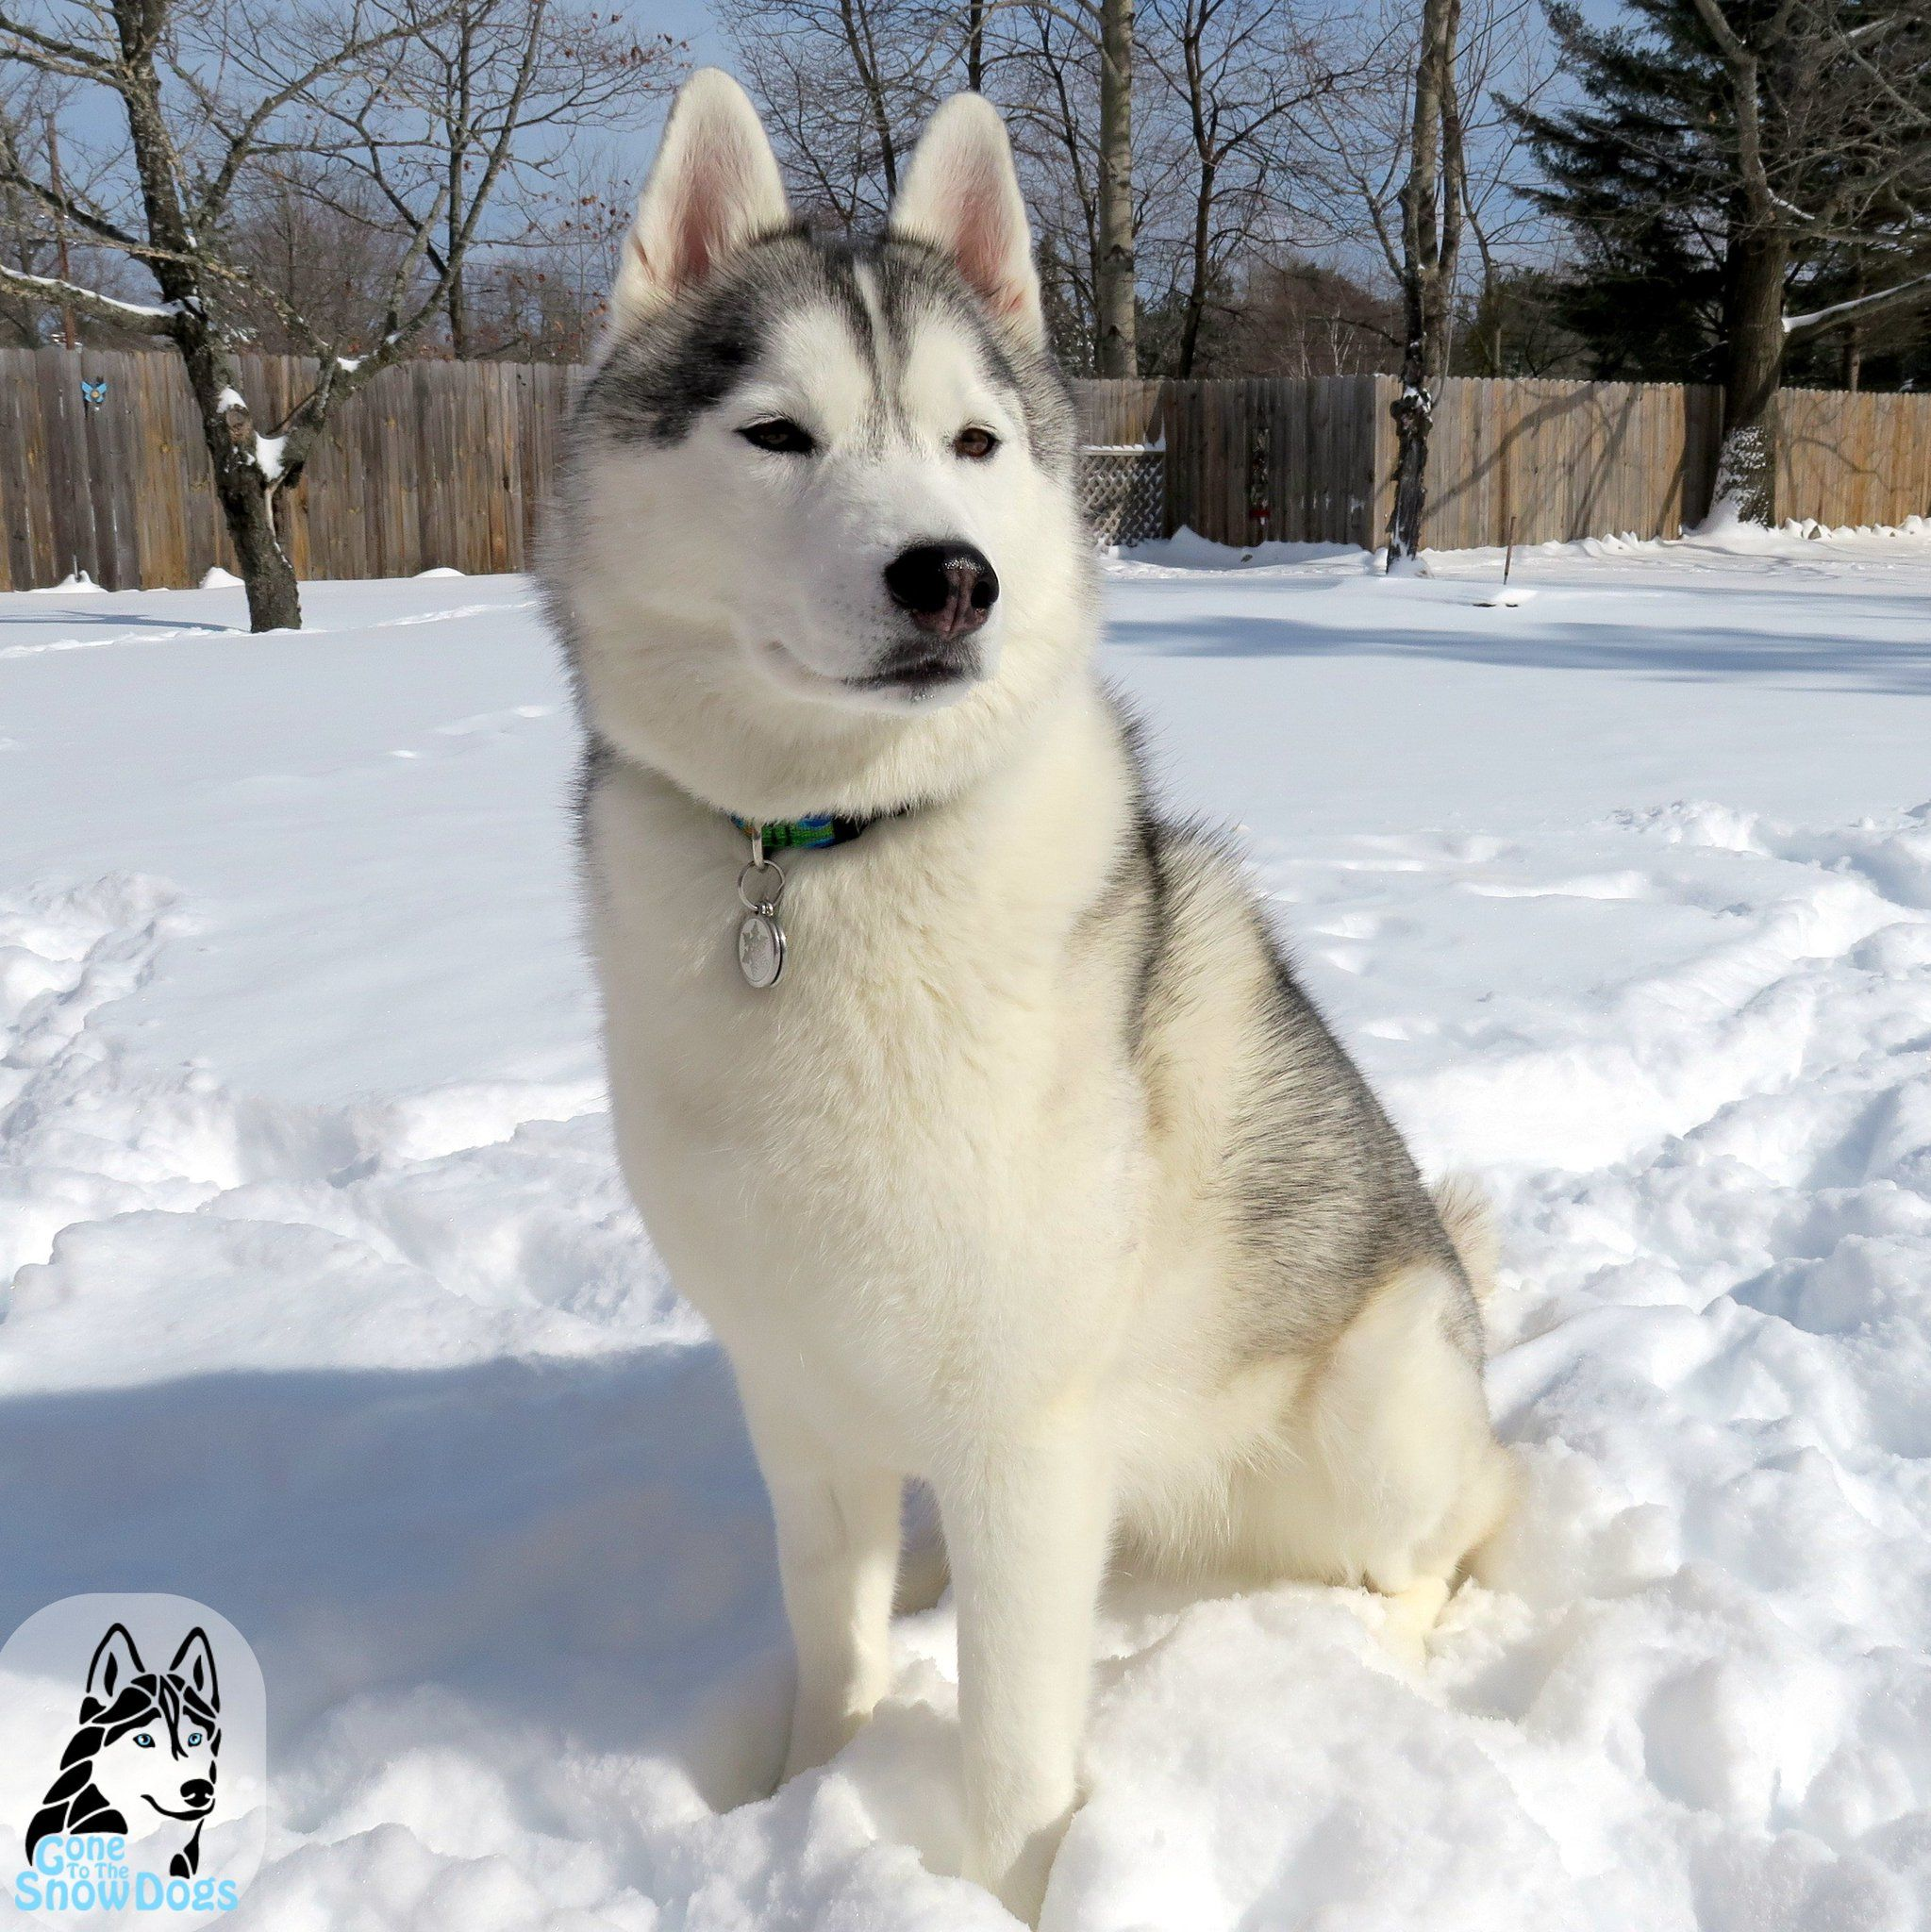 2 Snow Dogs Vlogs Snowdogsvlogs On Twitter Snow Dogs